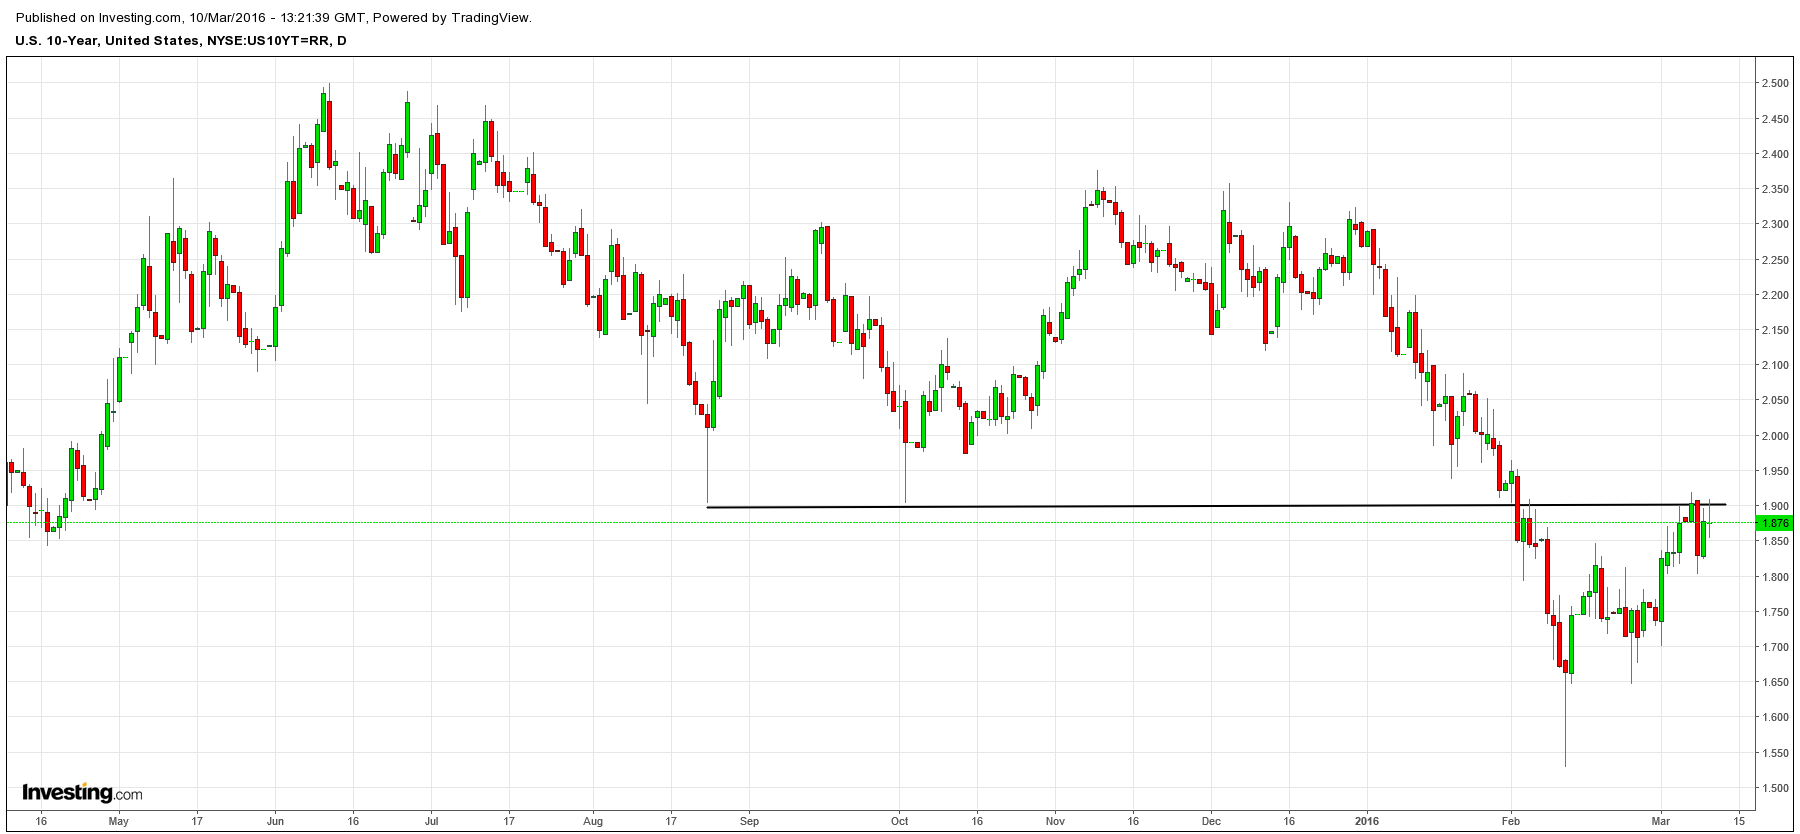 TNX- Pushed up to 1.89 from early 1.86.. but until 1.92 is exceeded, this remains resistance